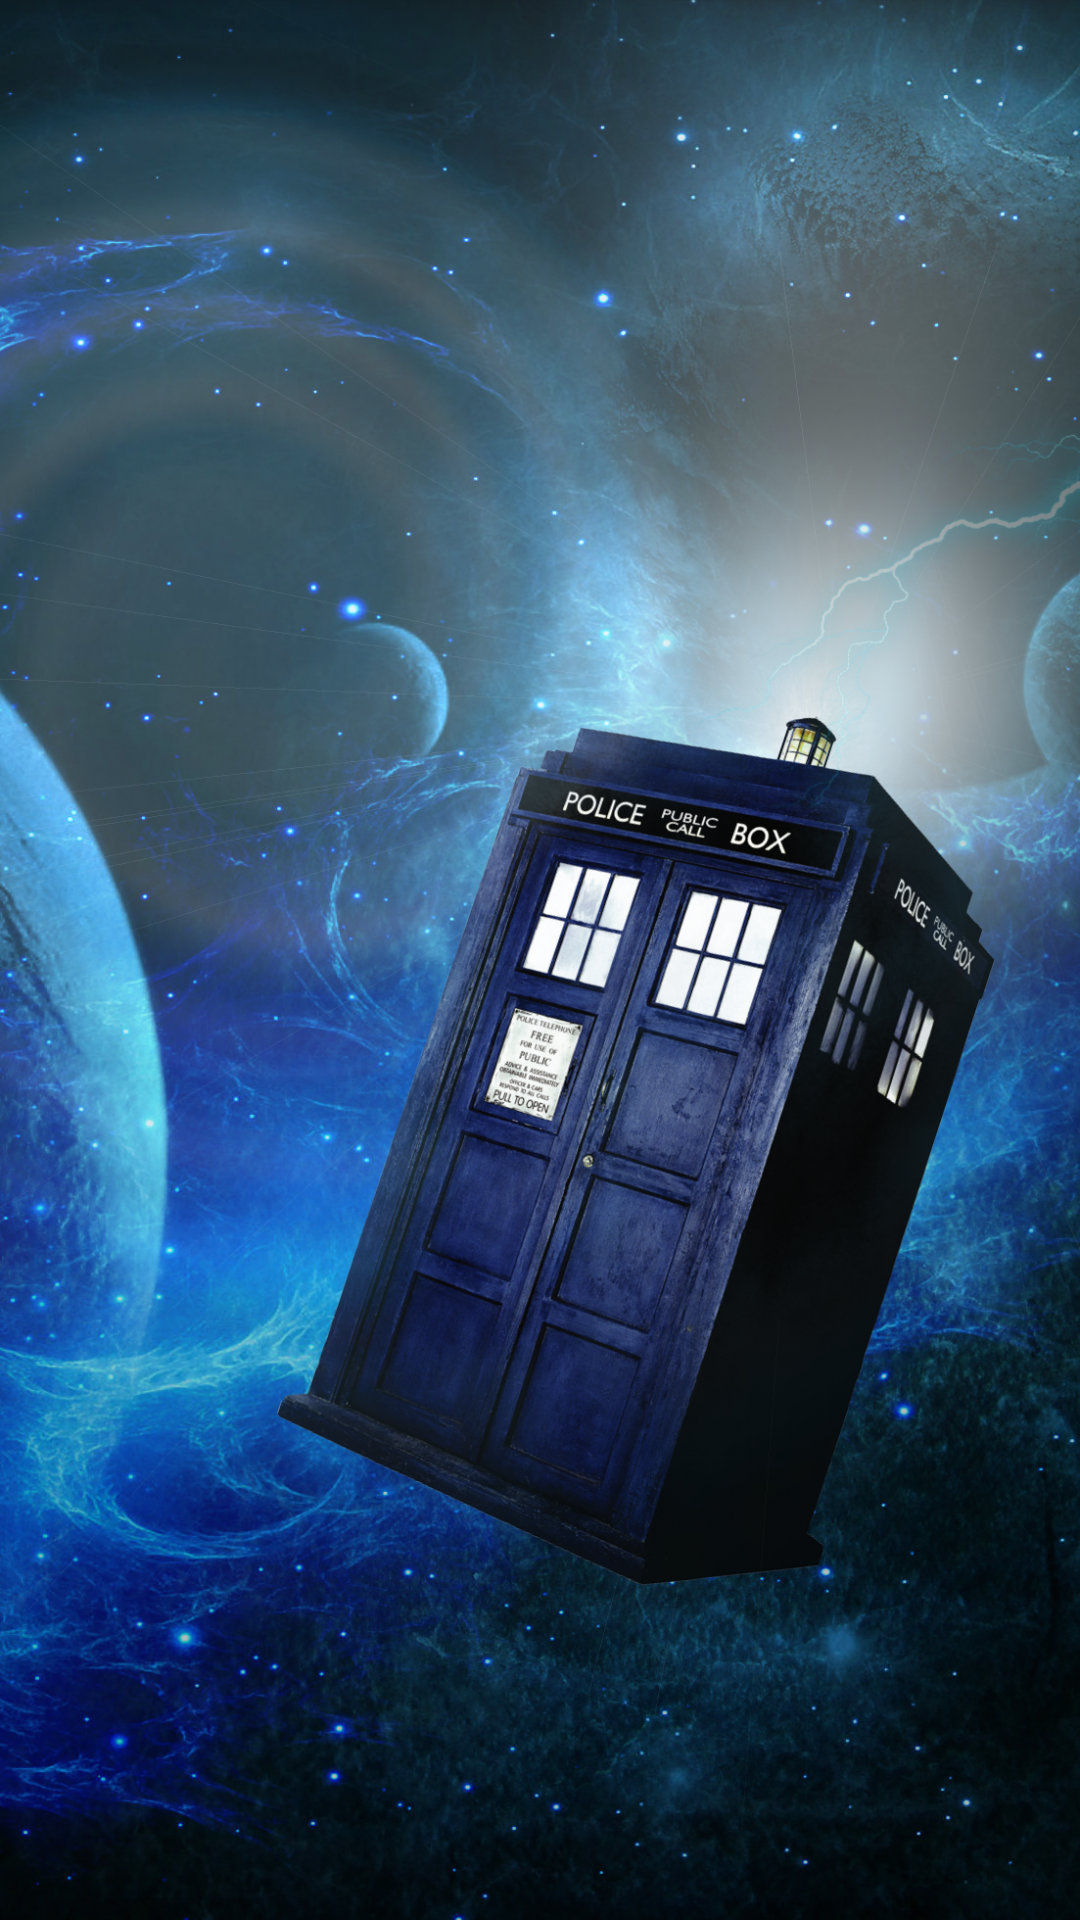 Doctor Who in the funny sky iphone case